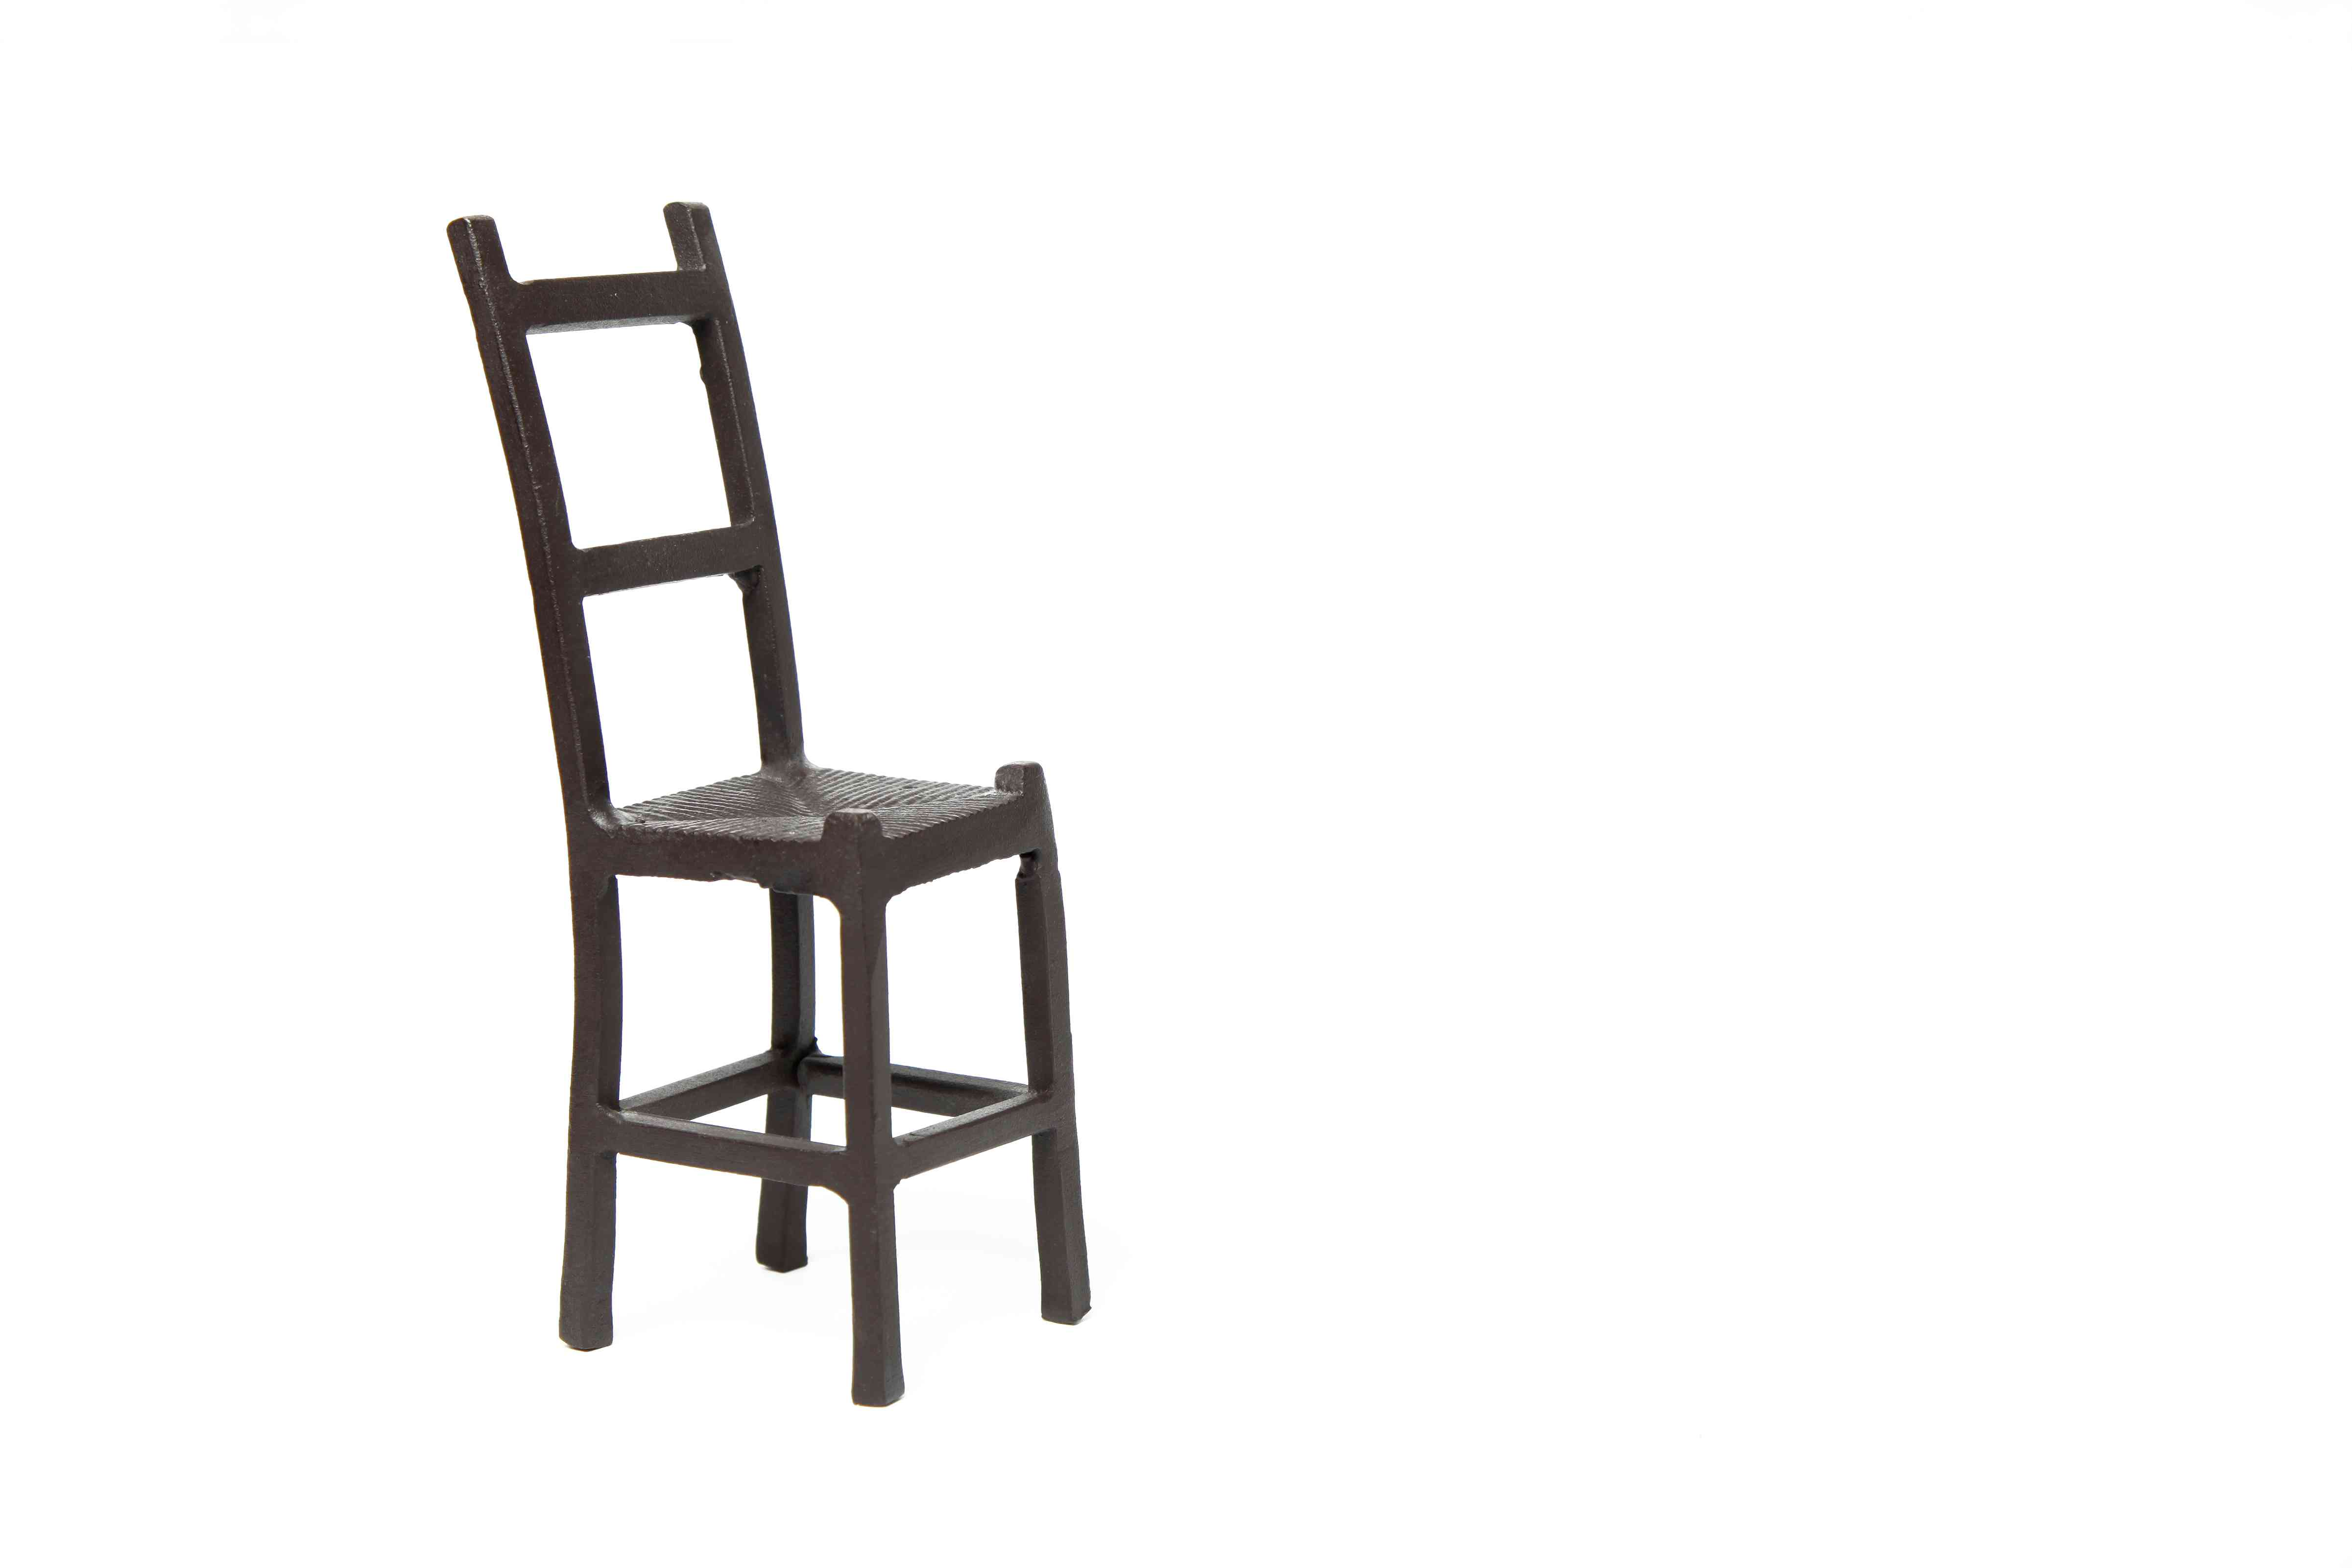 Isolated old shaker chair